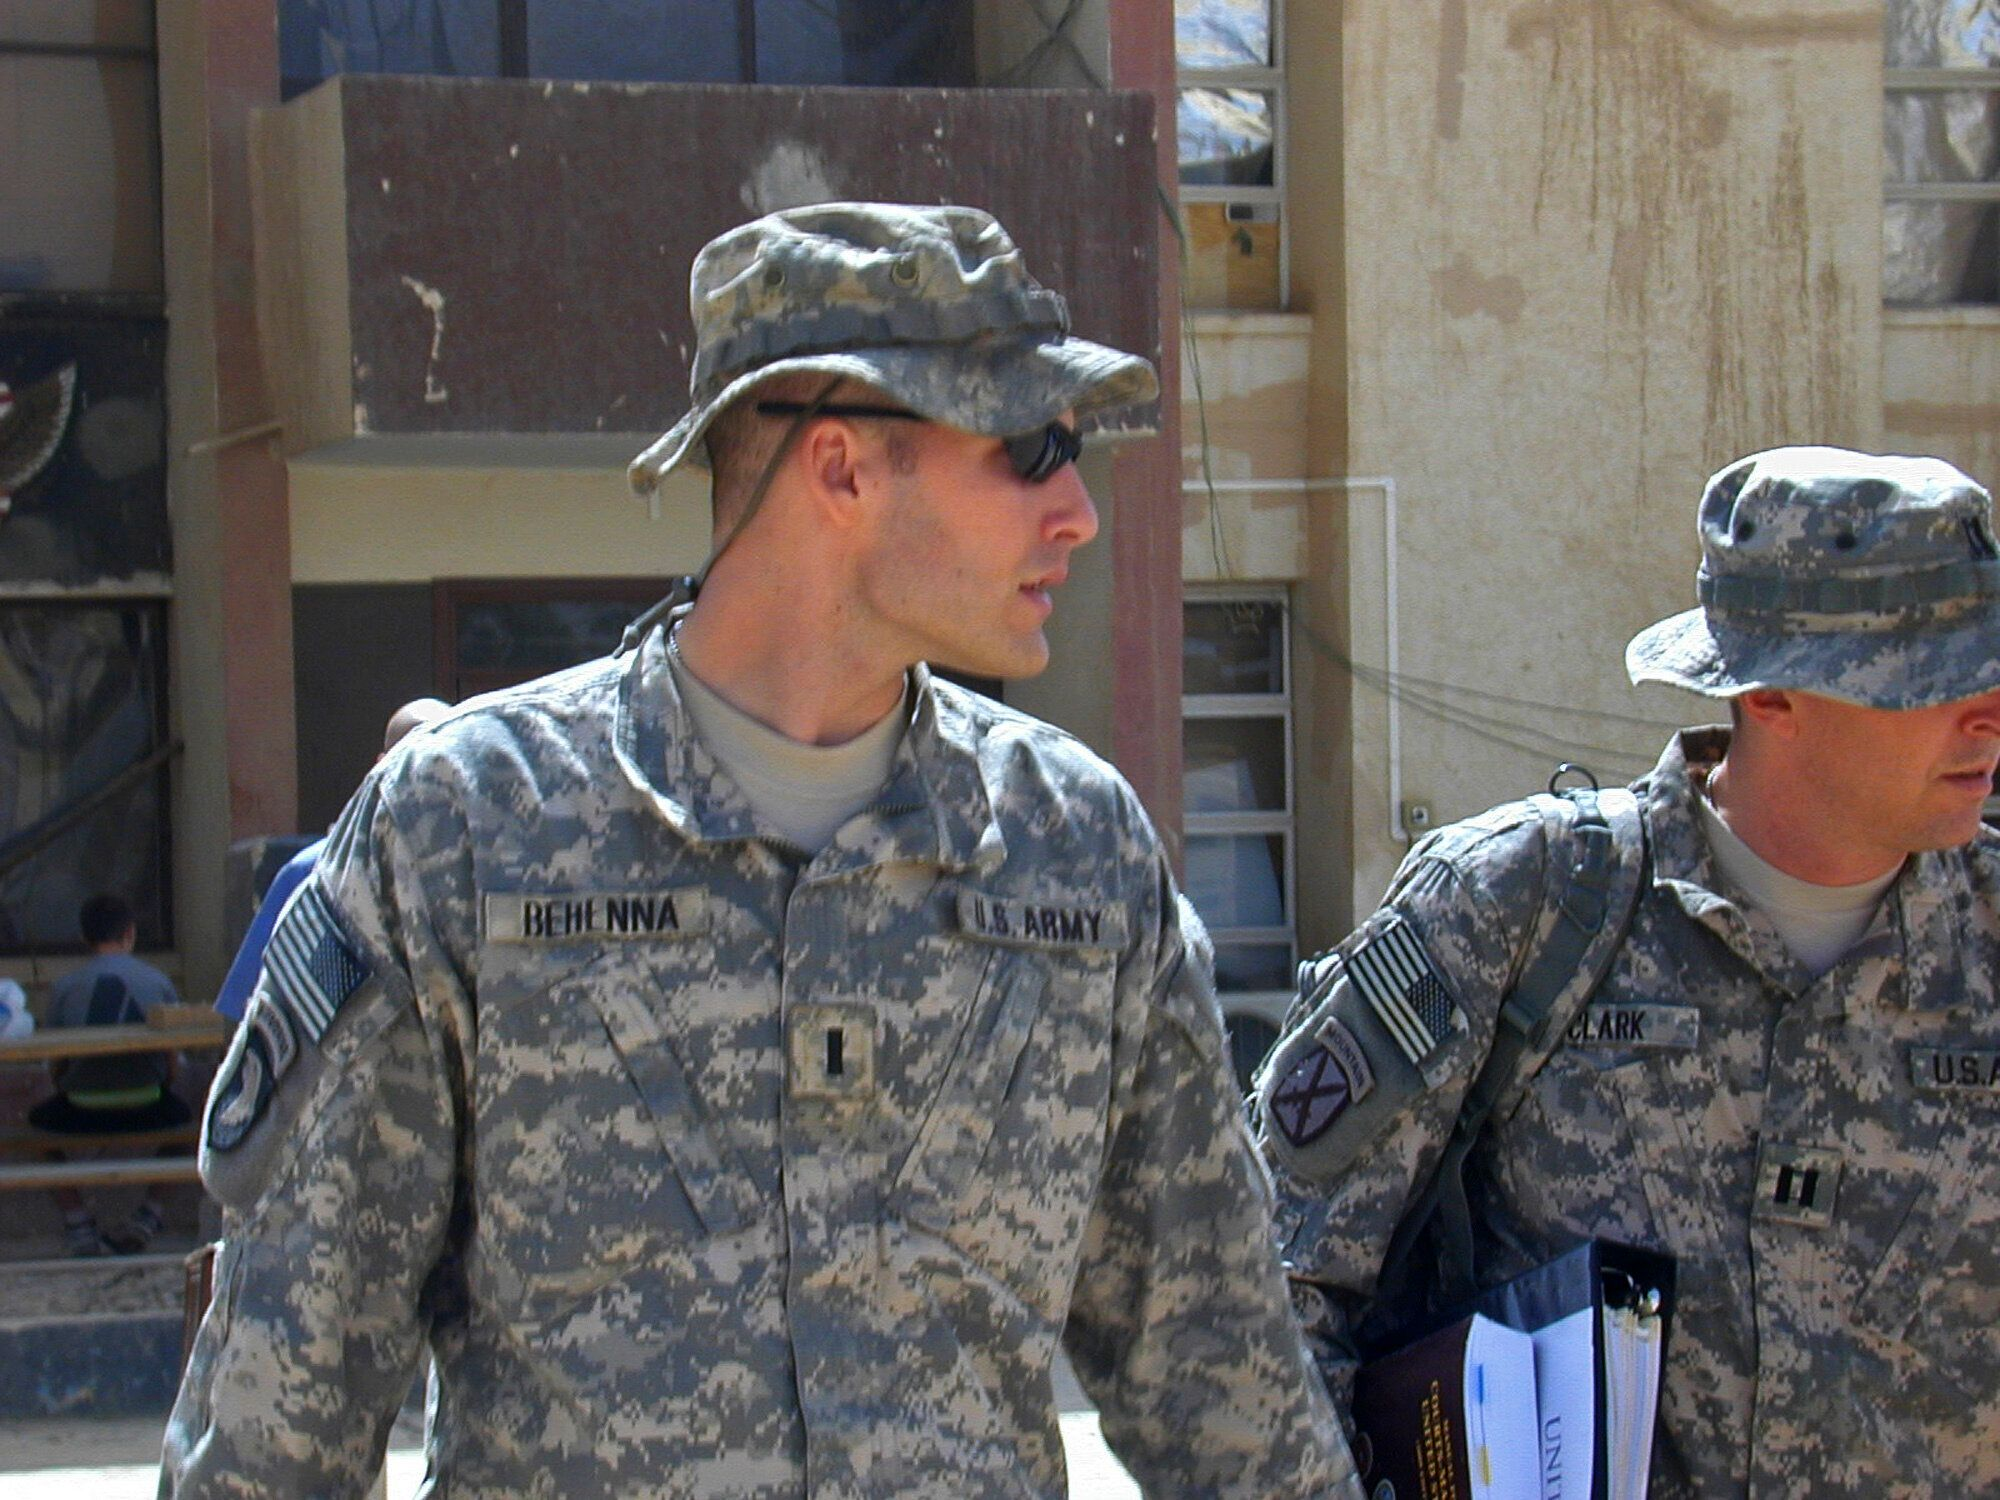 FILE - In this Sunday, Sept. 21, 2008, file photo, 1st Lt. Michael C. Behenna, left, and his defense attorney Capt. Tom Clark, right, walk in Camp Speicher, a large U.S. base near Tikrit, north of Baghdad, Iraq. The White House announced Monday, May 6, 2019, that President Donald Trump pardoned Behenna, a former U.S. soldier convicted in 2009 of killing an Iraqi prisoner. (AP Photo/Vanessa Gera, File)